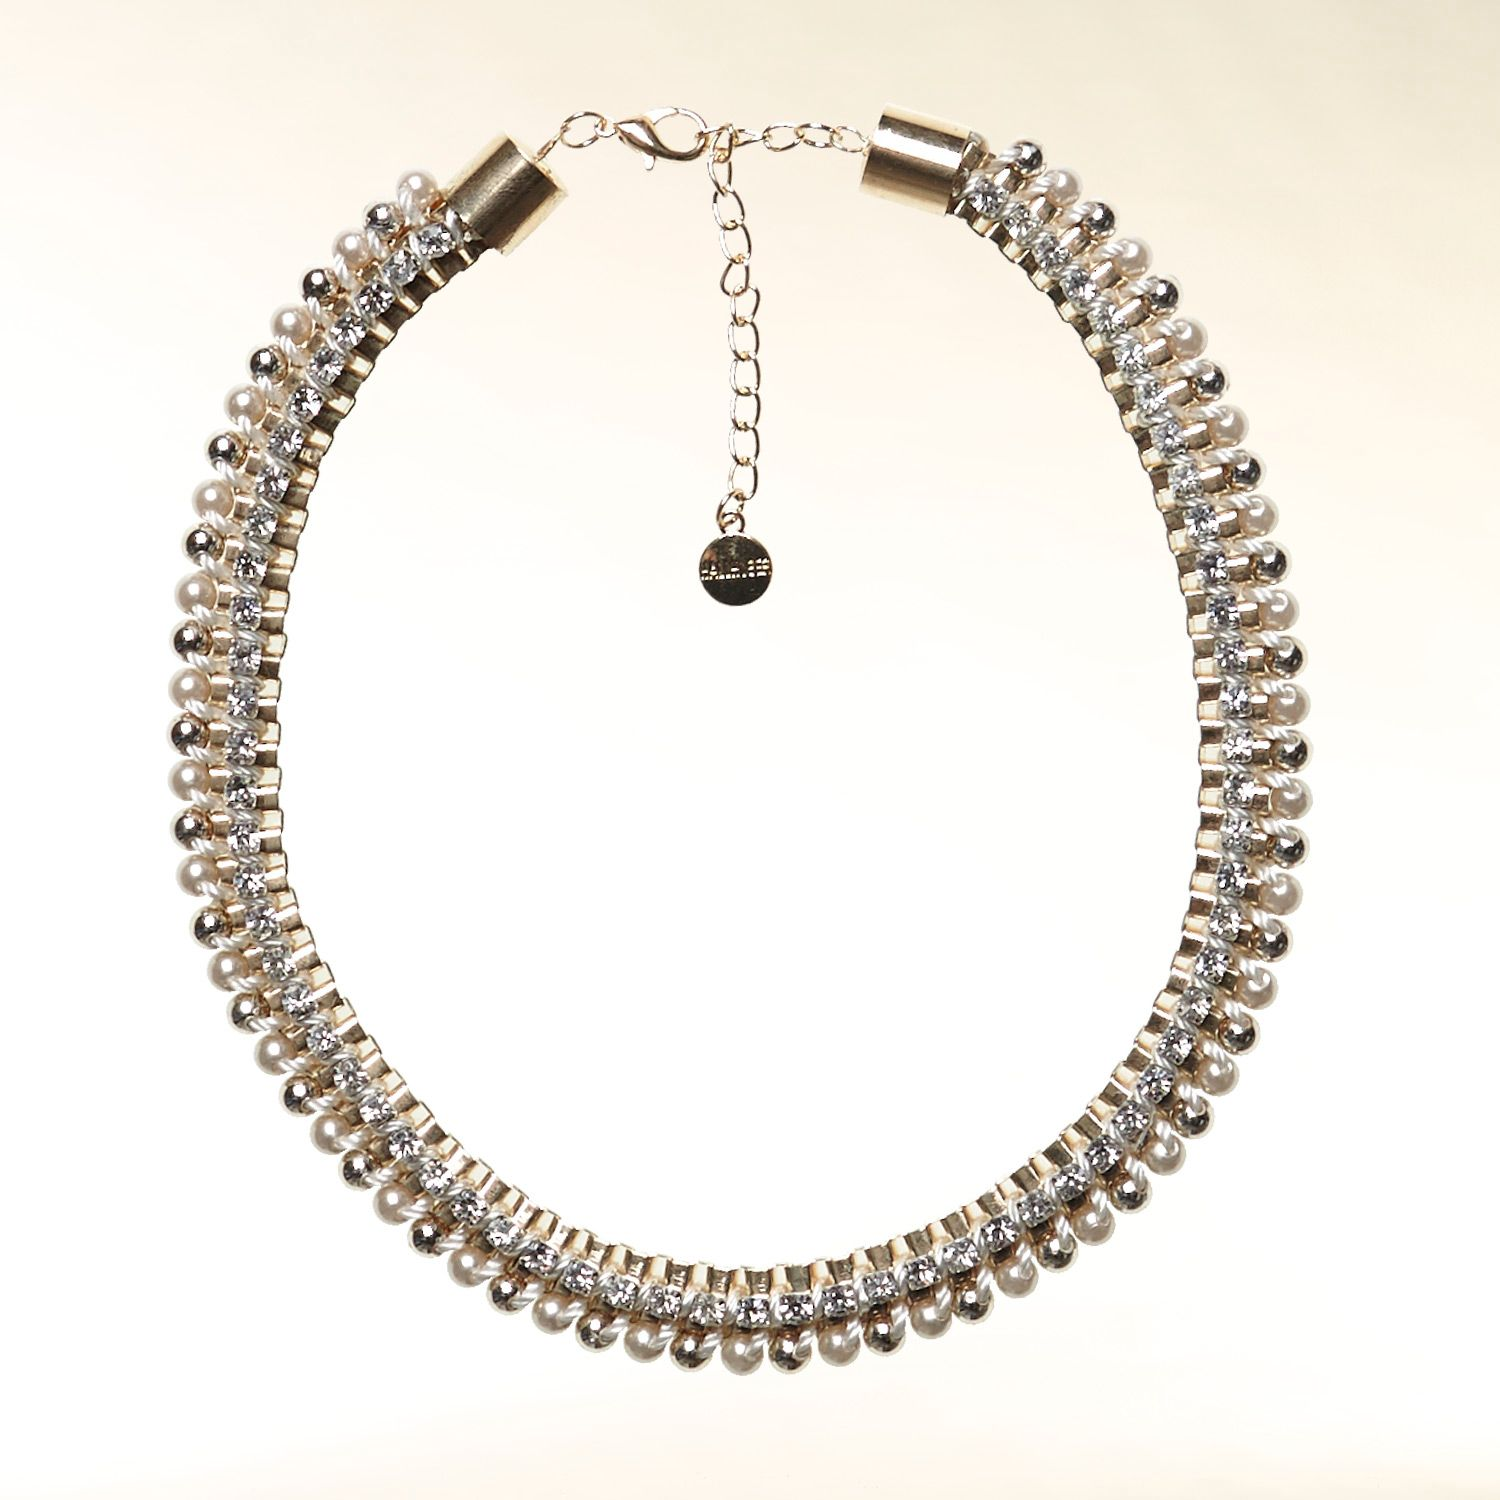 Pearl and rhinestone embellished necklace